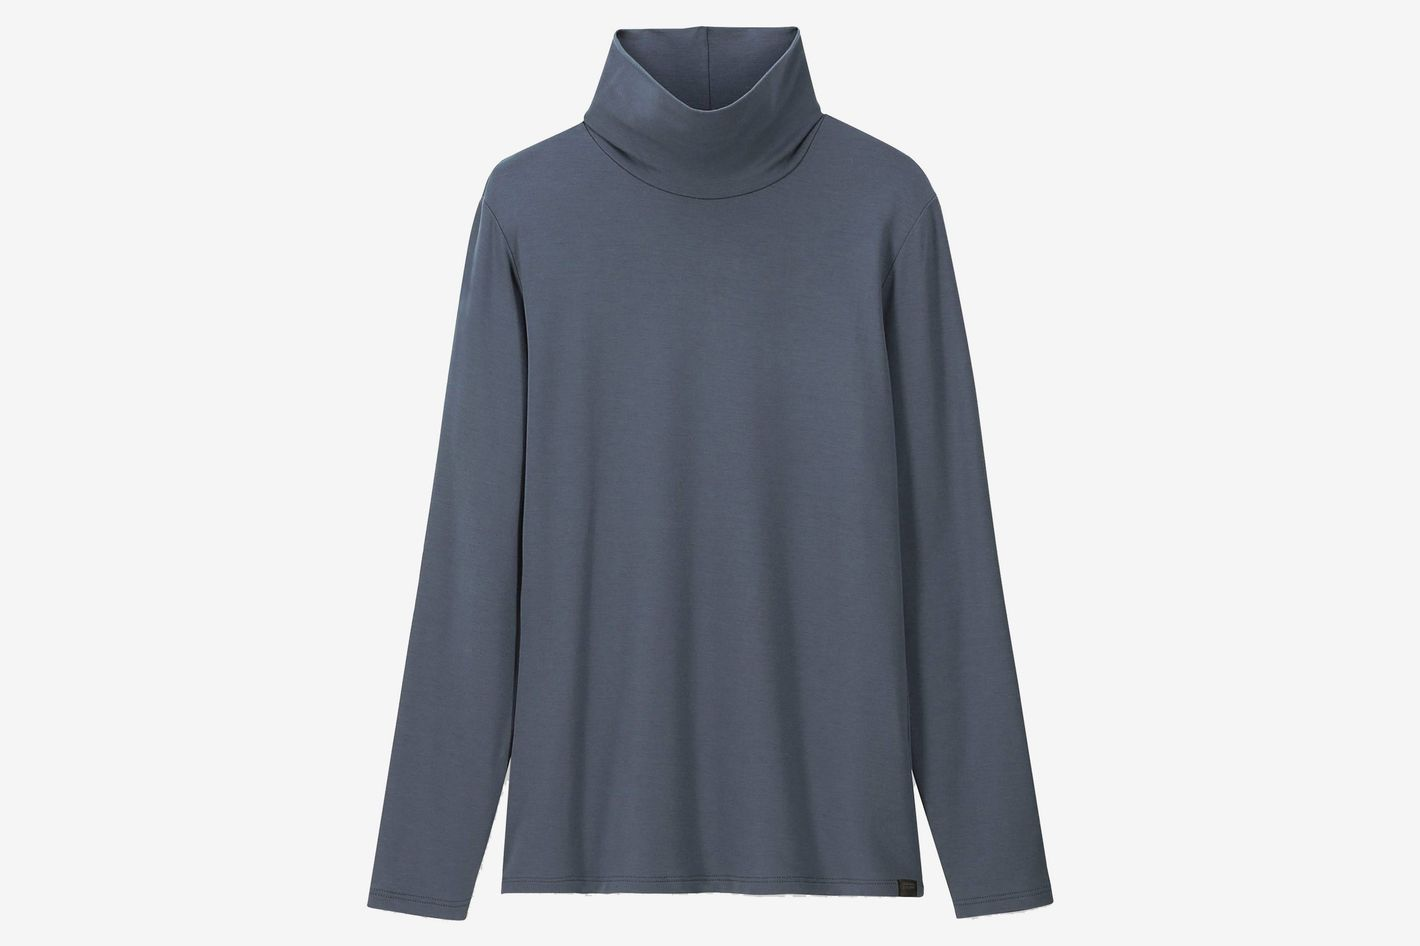 Uniqlo Women's Heattech Extra Warm Turtleneck T-shirt